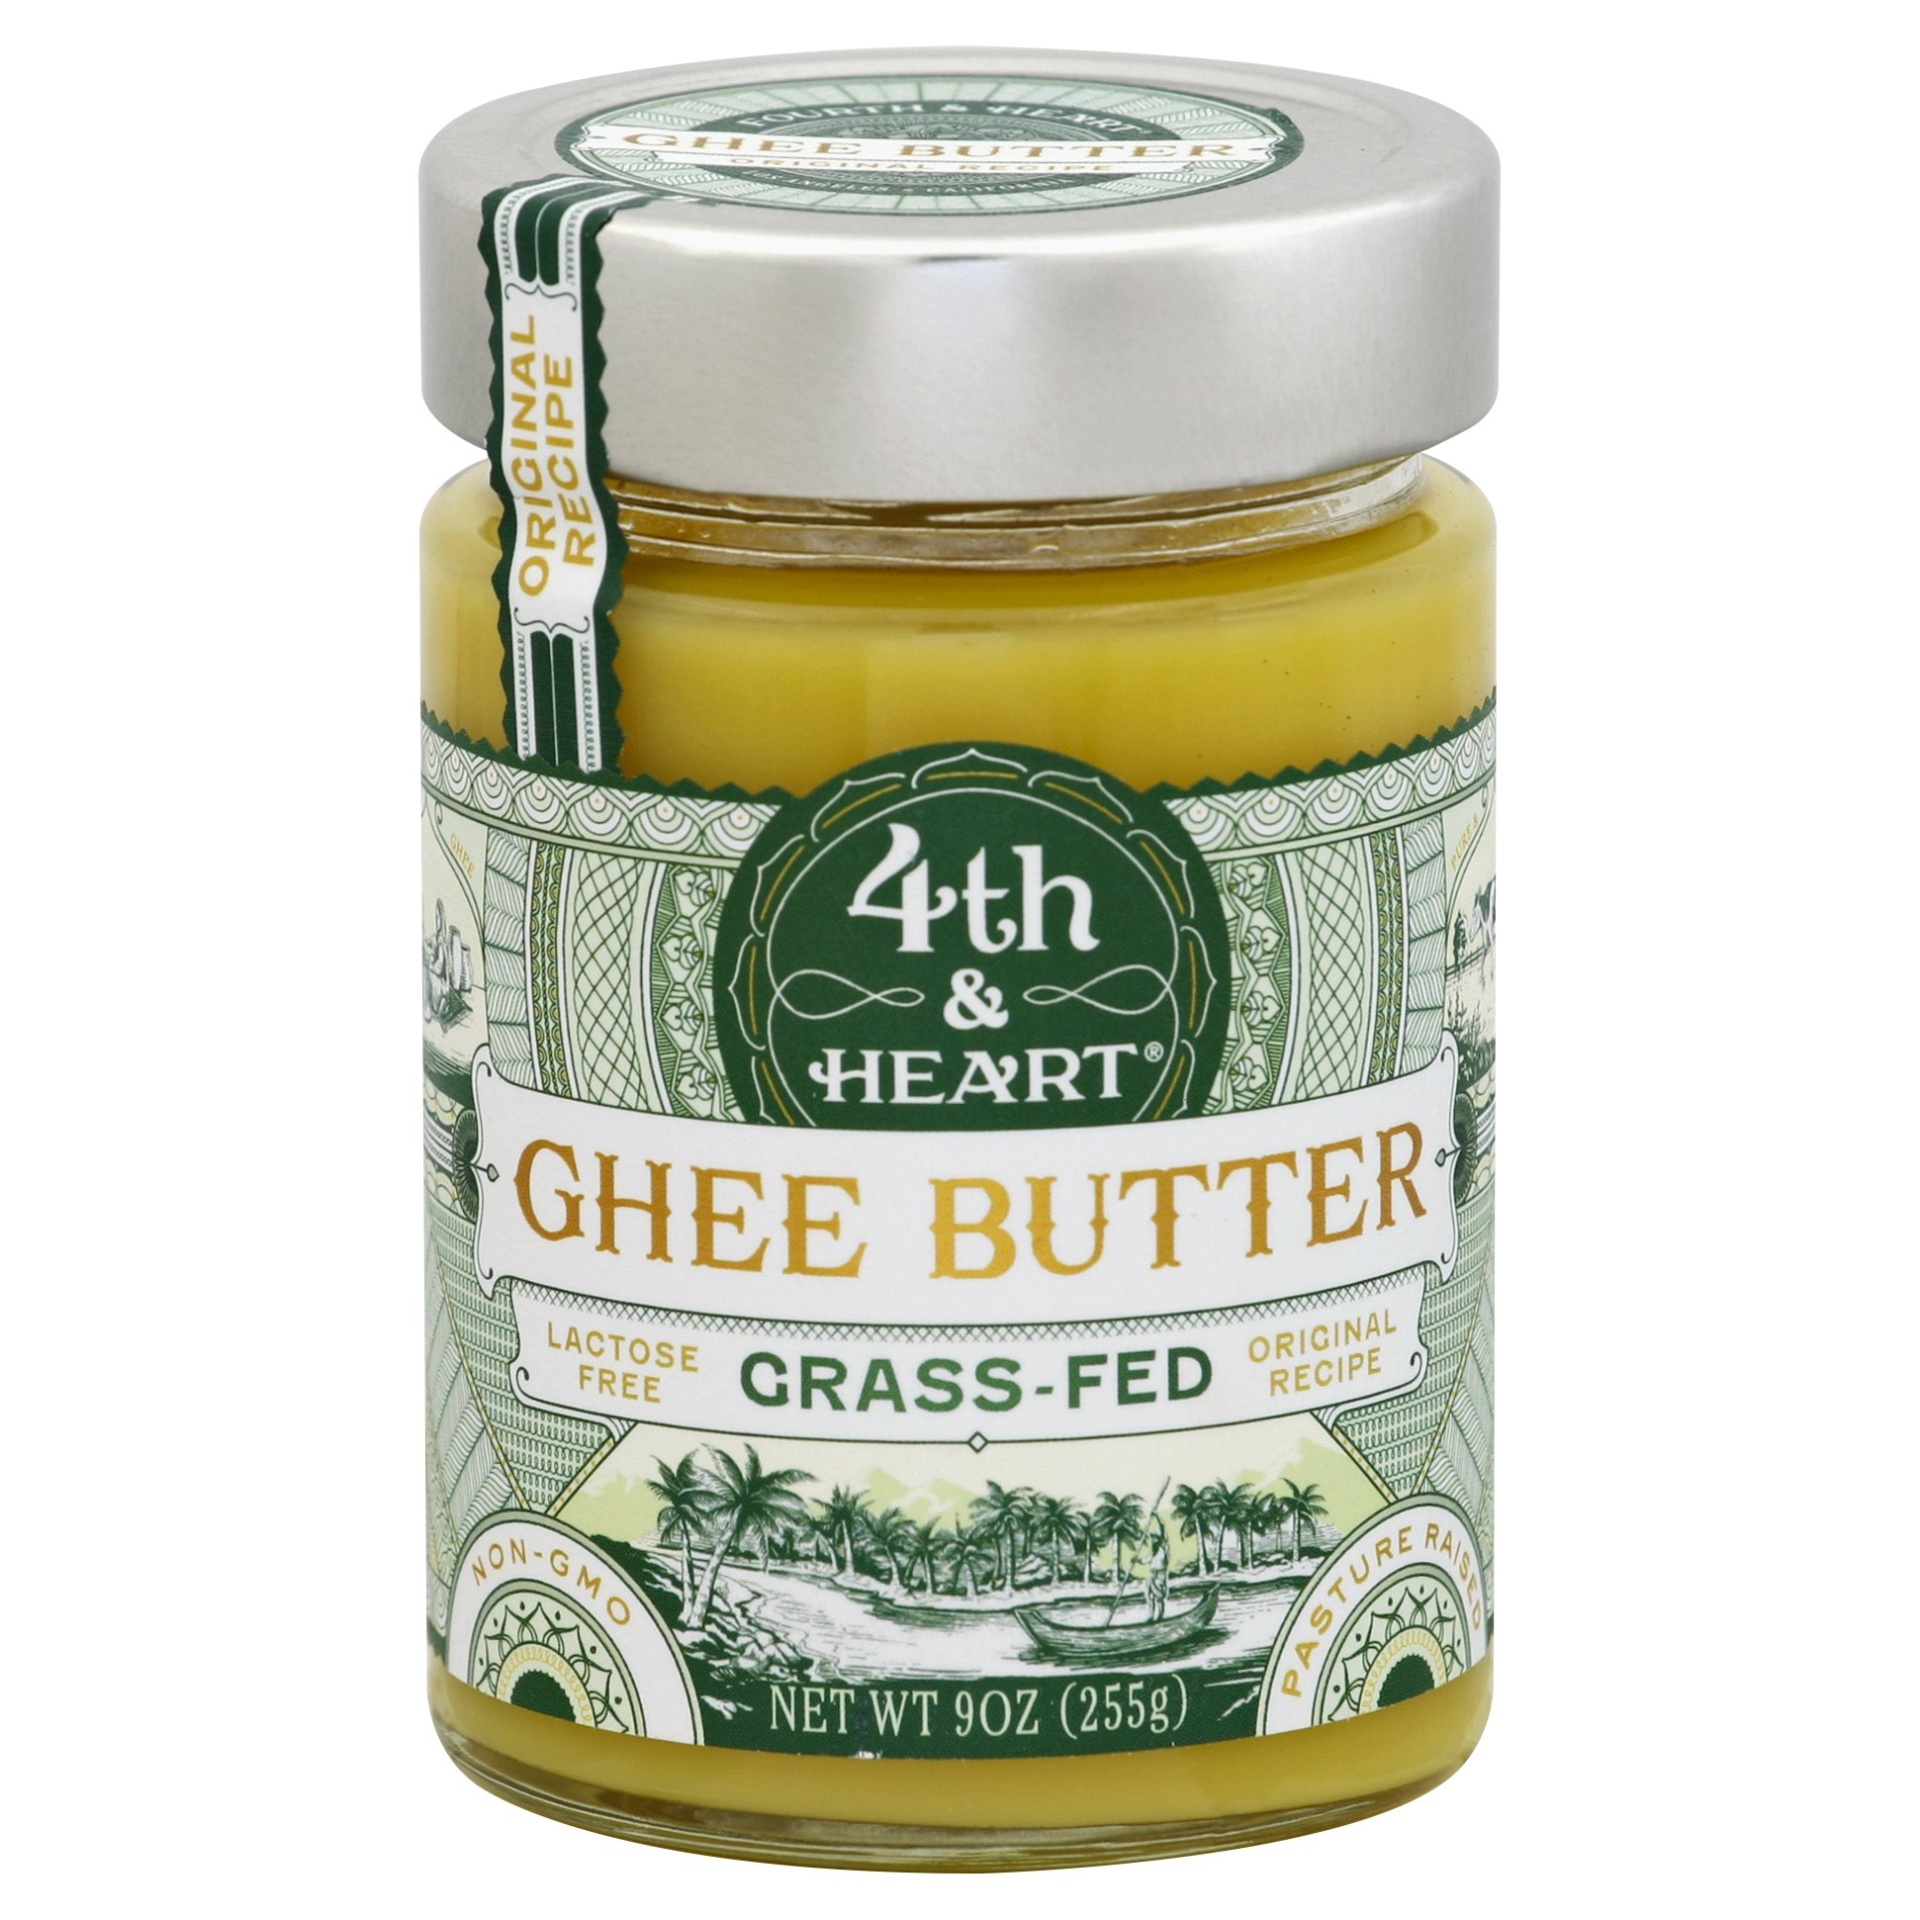 slide 1 of 1, 4th & Heart Original Ghee Butter,